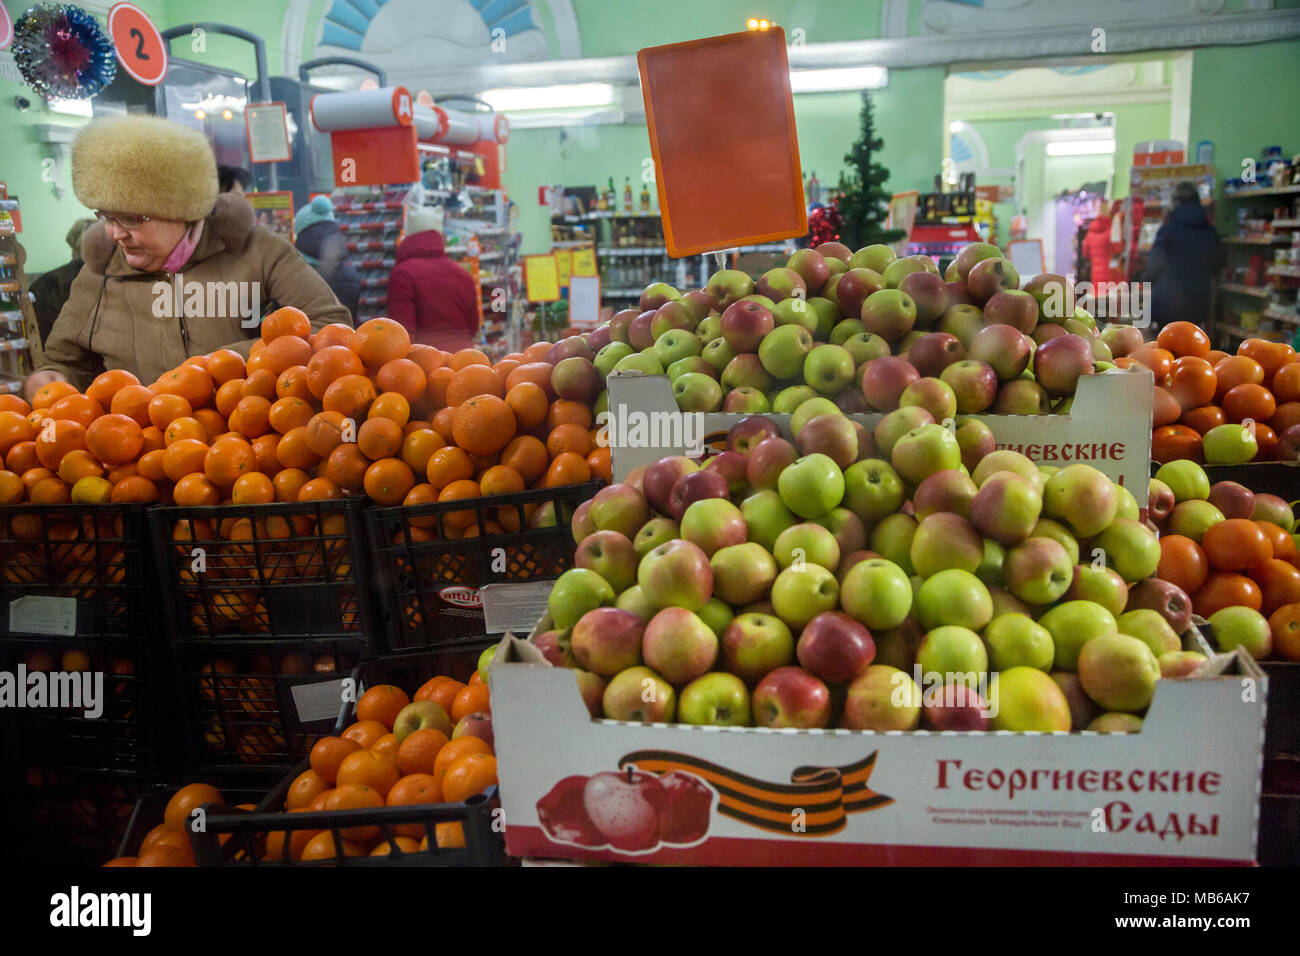 A woman chooses fruits in the grocery store of Kolomna town, Moscow region, Russia - Stock Image